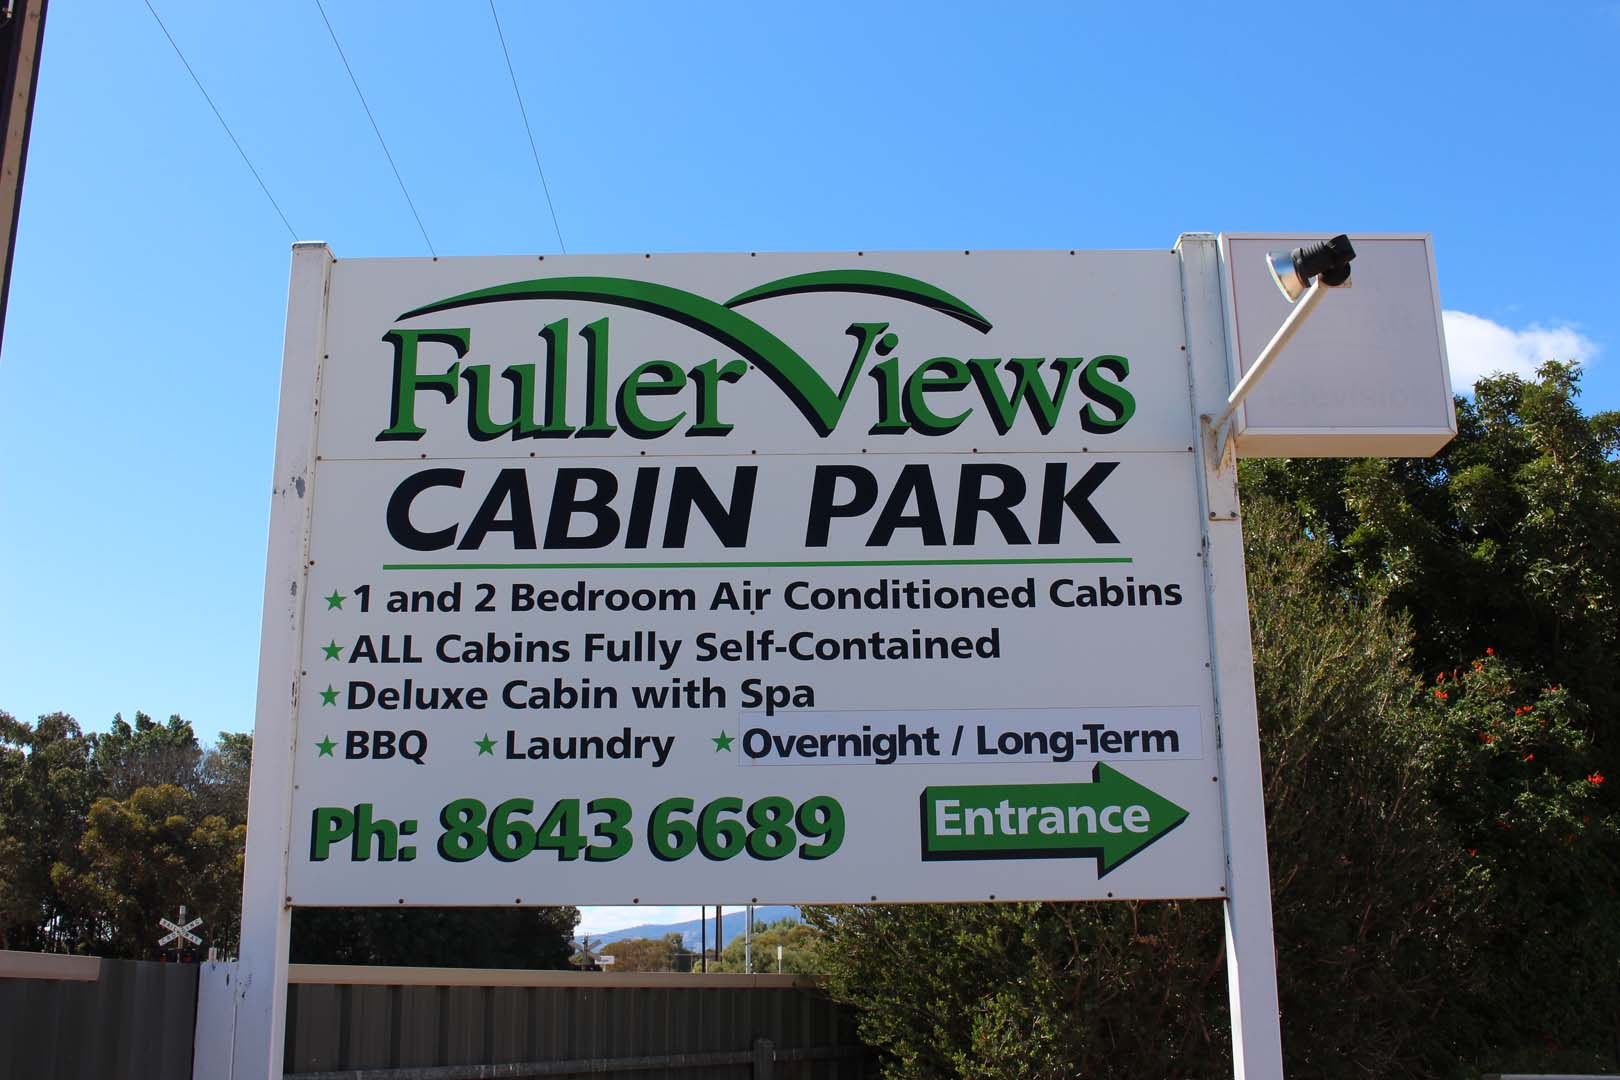 fuller-views-cabin-park-large-sign